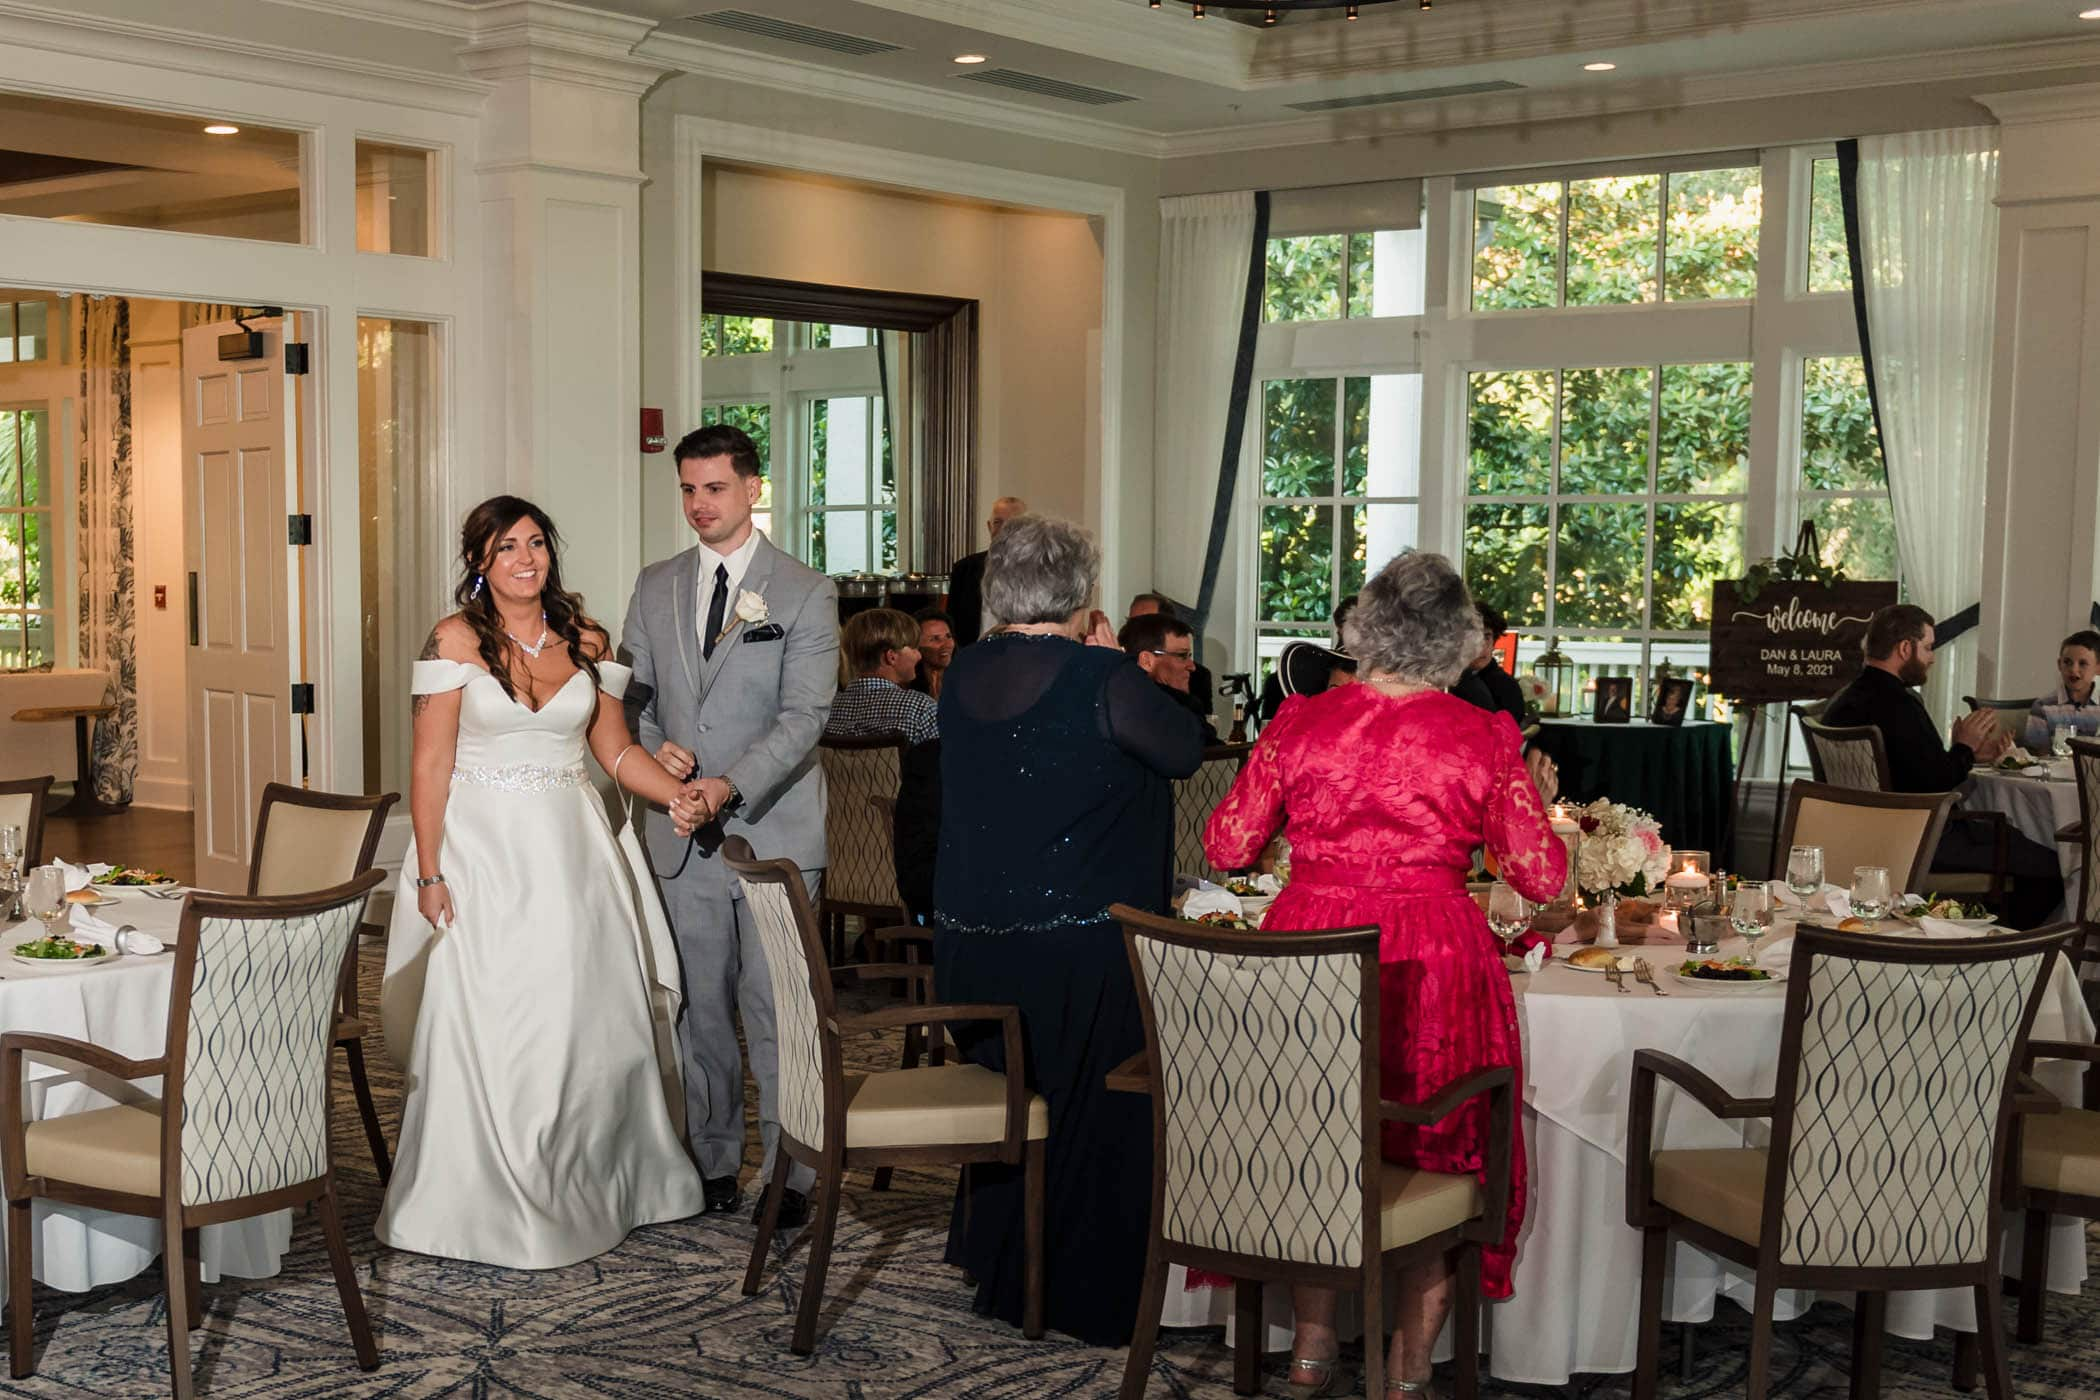 Grand entrance of the bride and groom at the reception Dataw Island Club House by Susan DeLoach Photography SC wedding photographers